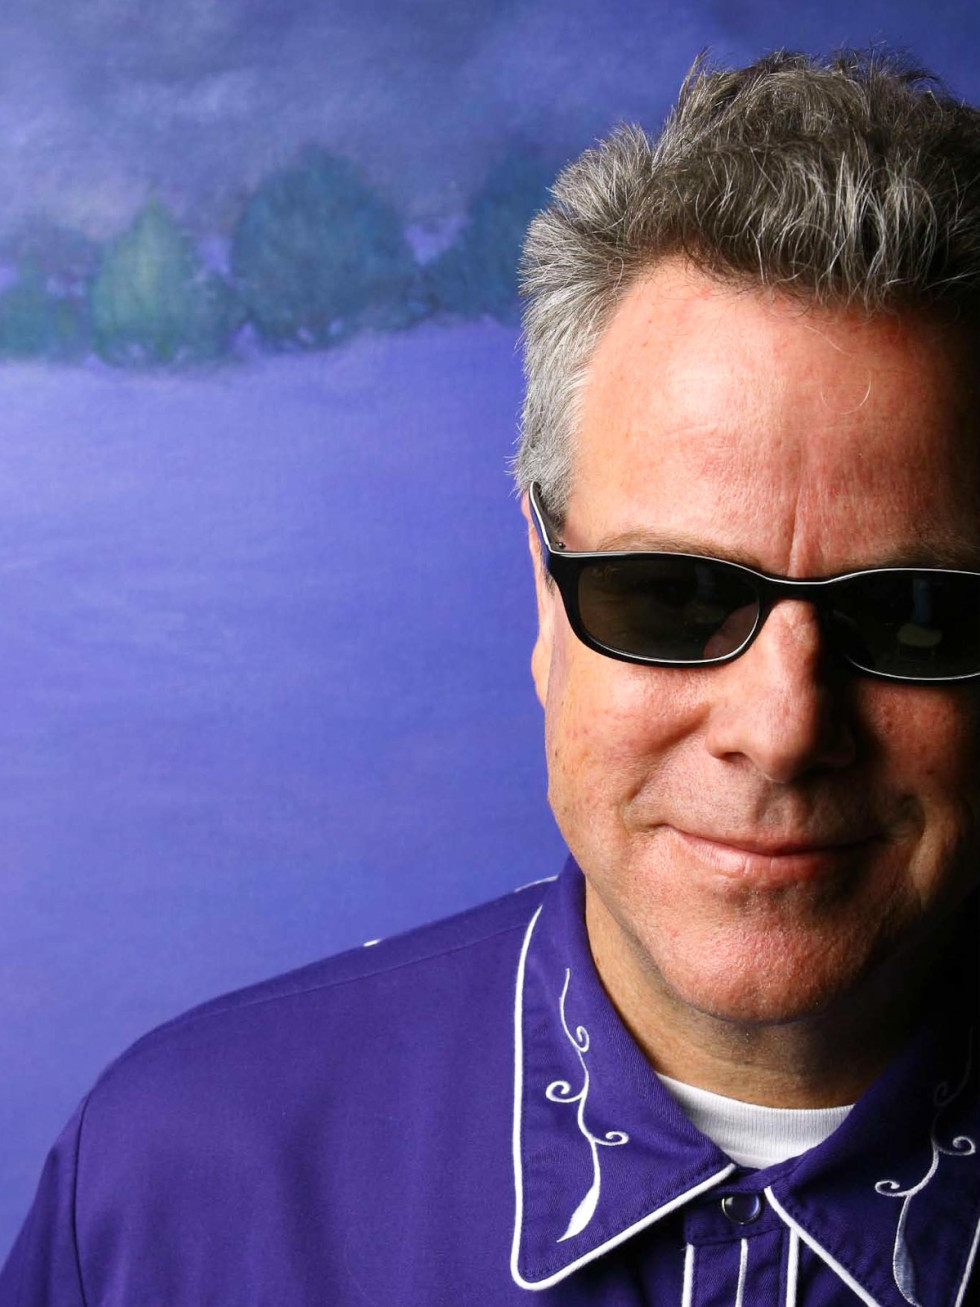 Events-Robert Earl Keen